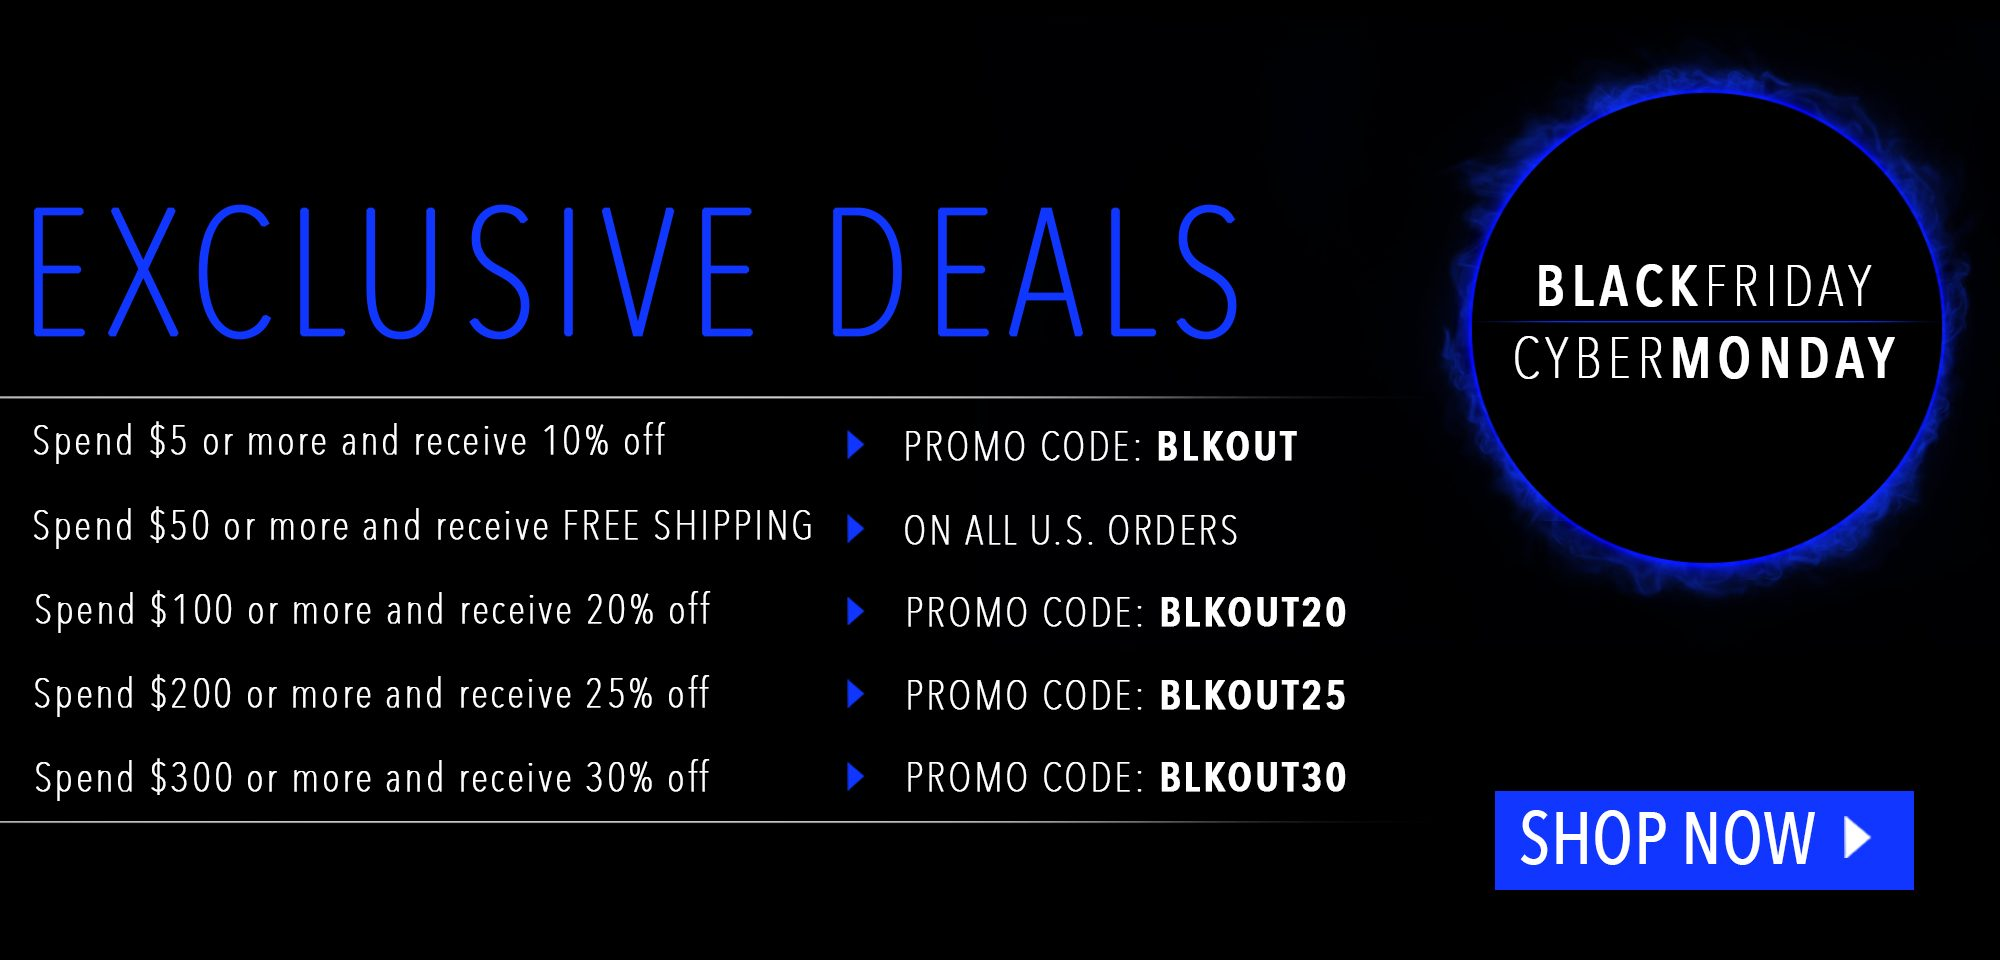 Black Friday and Cyber Monday 2019 Exclusive Deals - Shop Now!